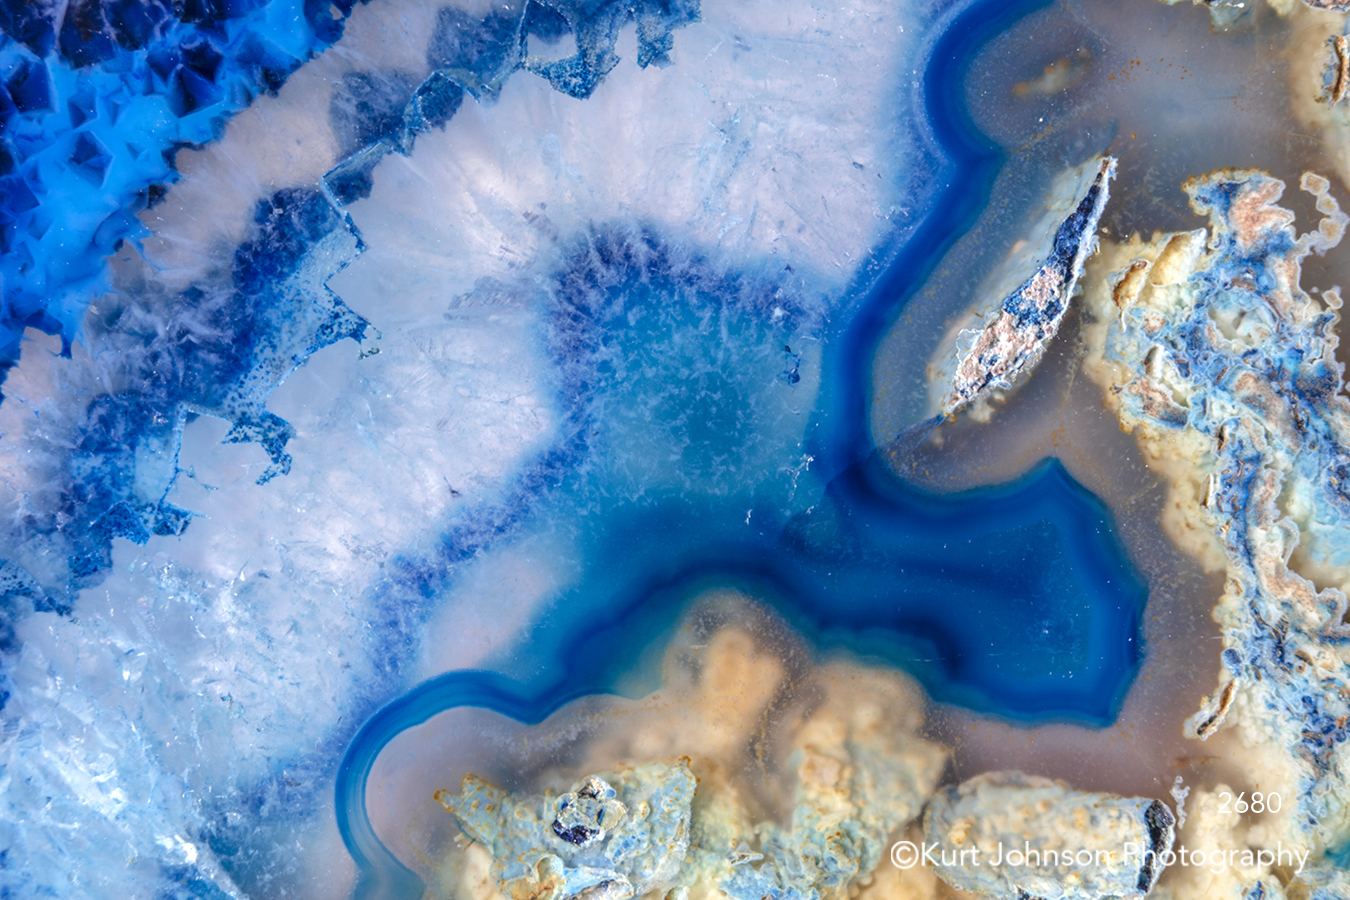 blue white rock crystal geode texture agate close up detail pattern modern textures